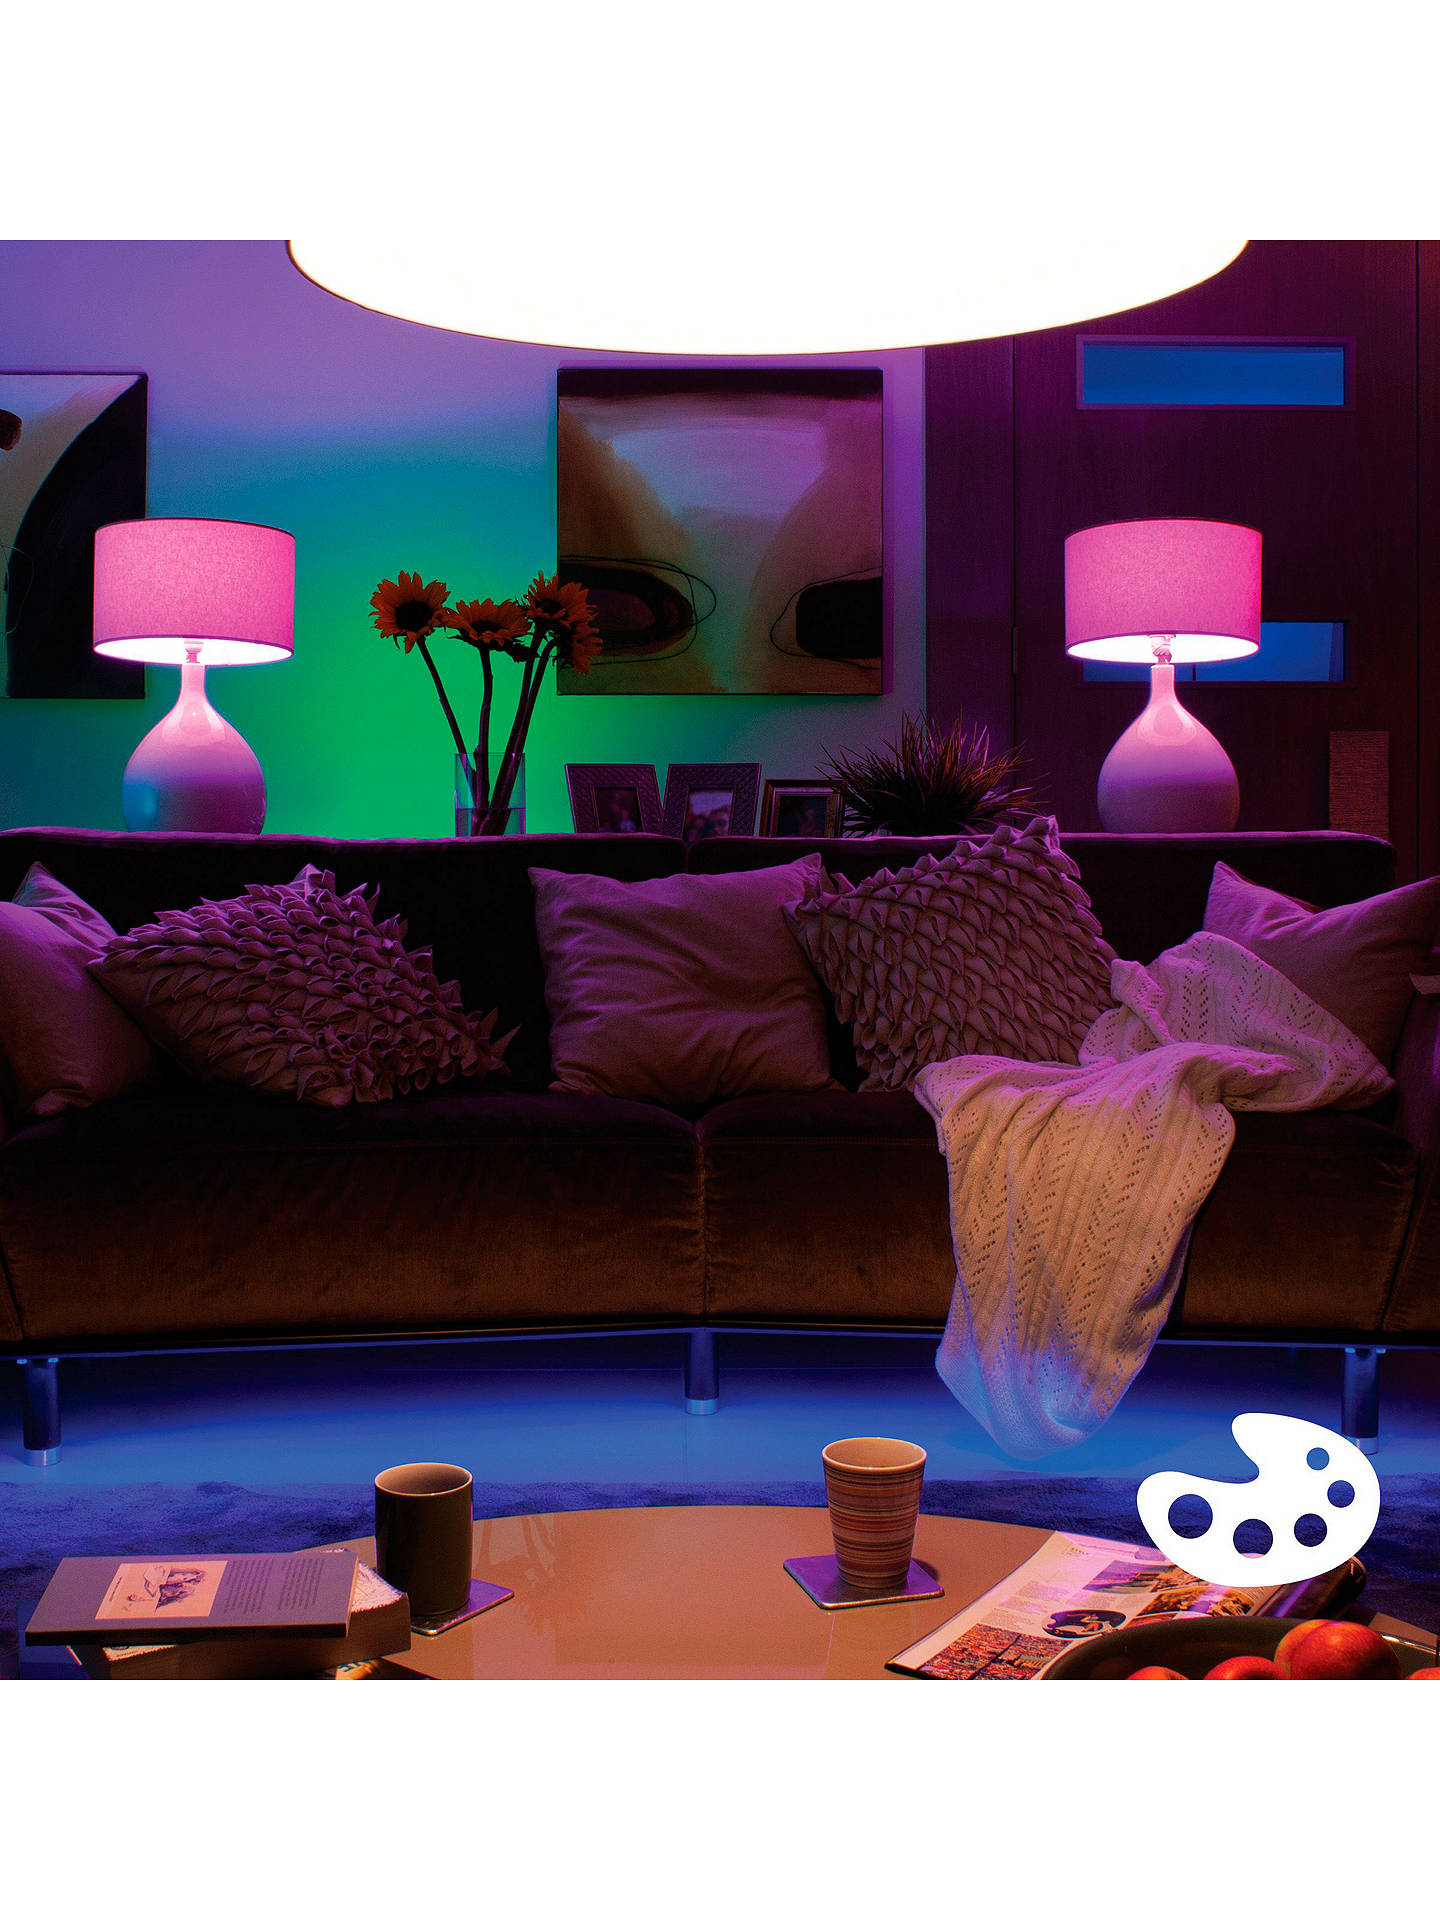 BuyPhilips Hue White and Colour Ambiance Wireless Lighting LED Starter Kit with 3 Bulbs, 6.5W GU10 Online at johnlewis.com